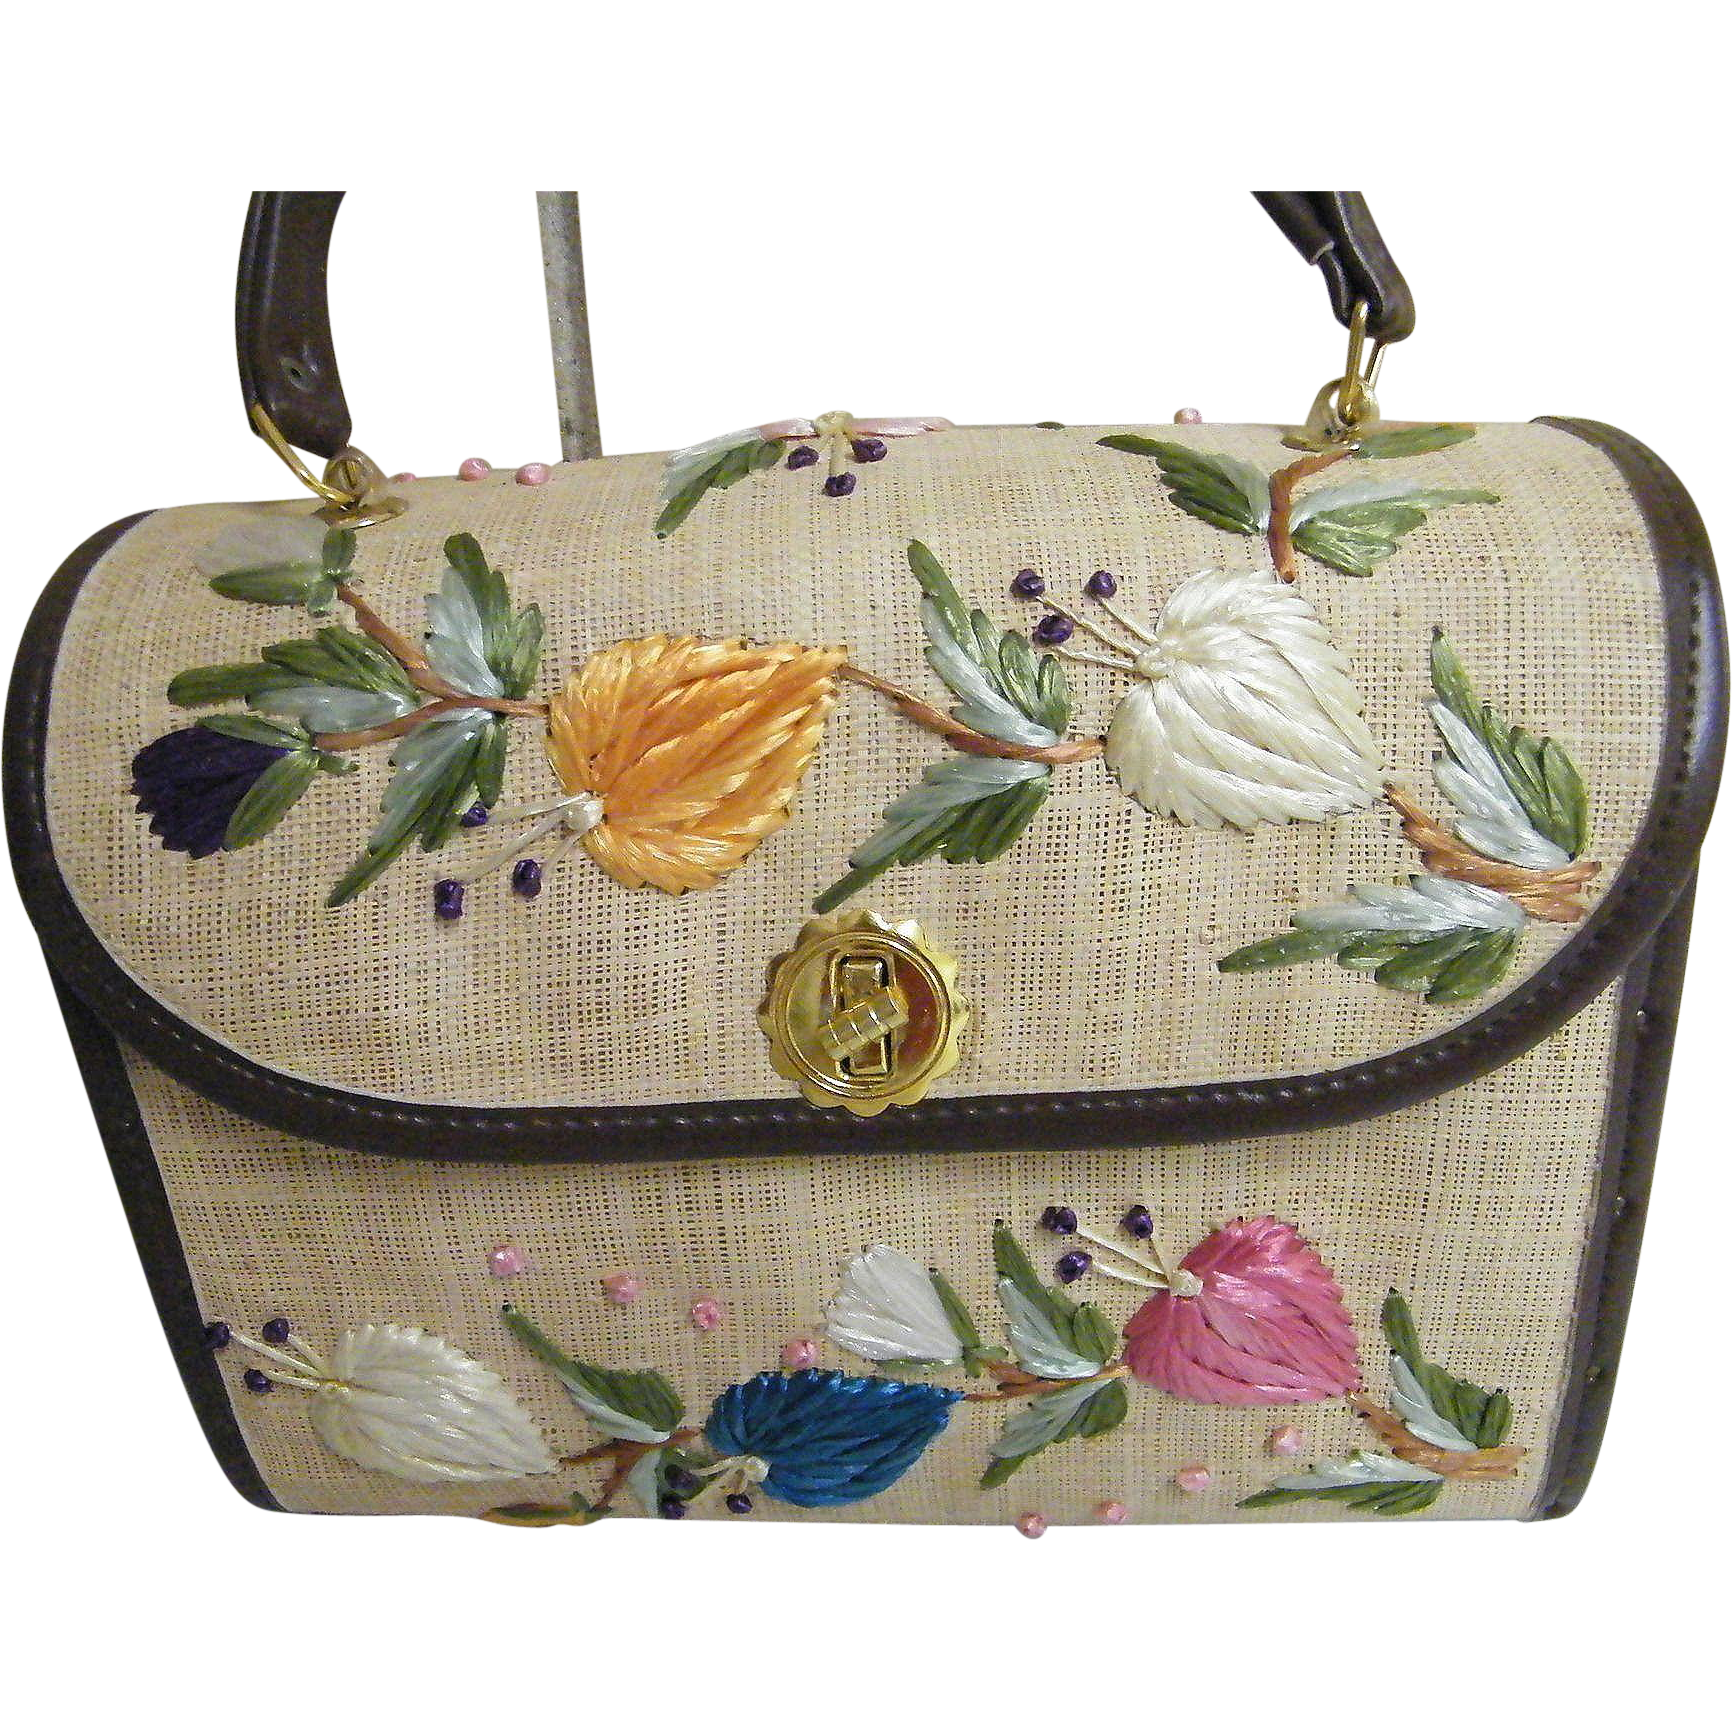 Colorful Embroidered Raffia Leaves On Box Straw Hand Bag / Purse With Wood Sides By Whidby, Inc. Adele, Georgia